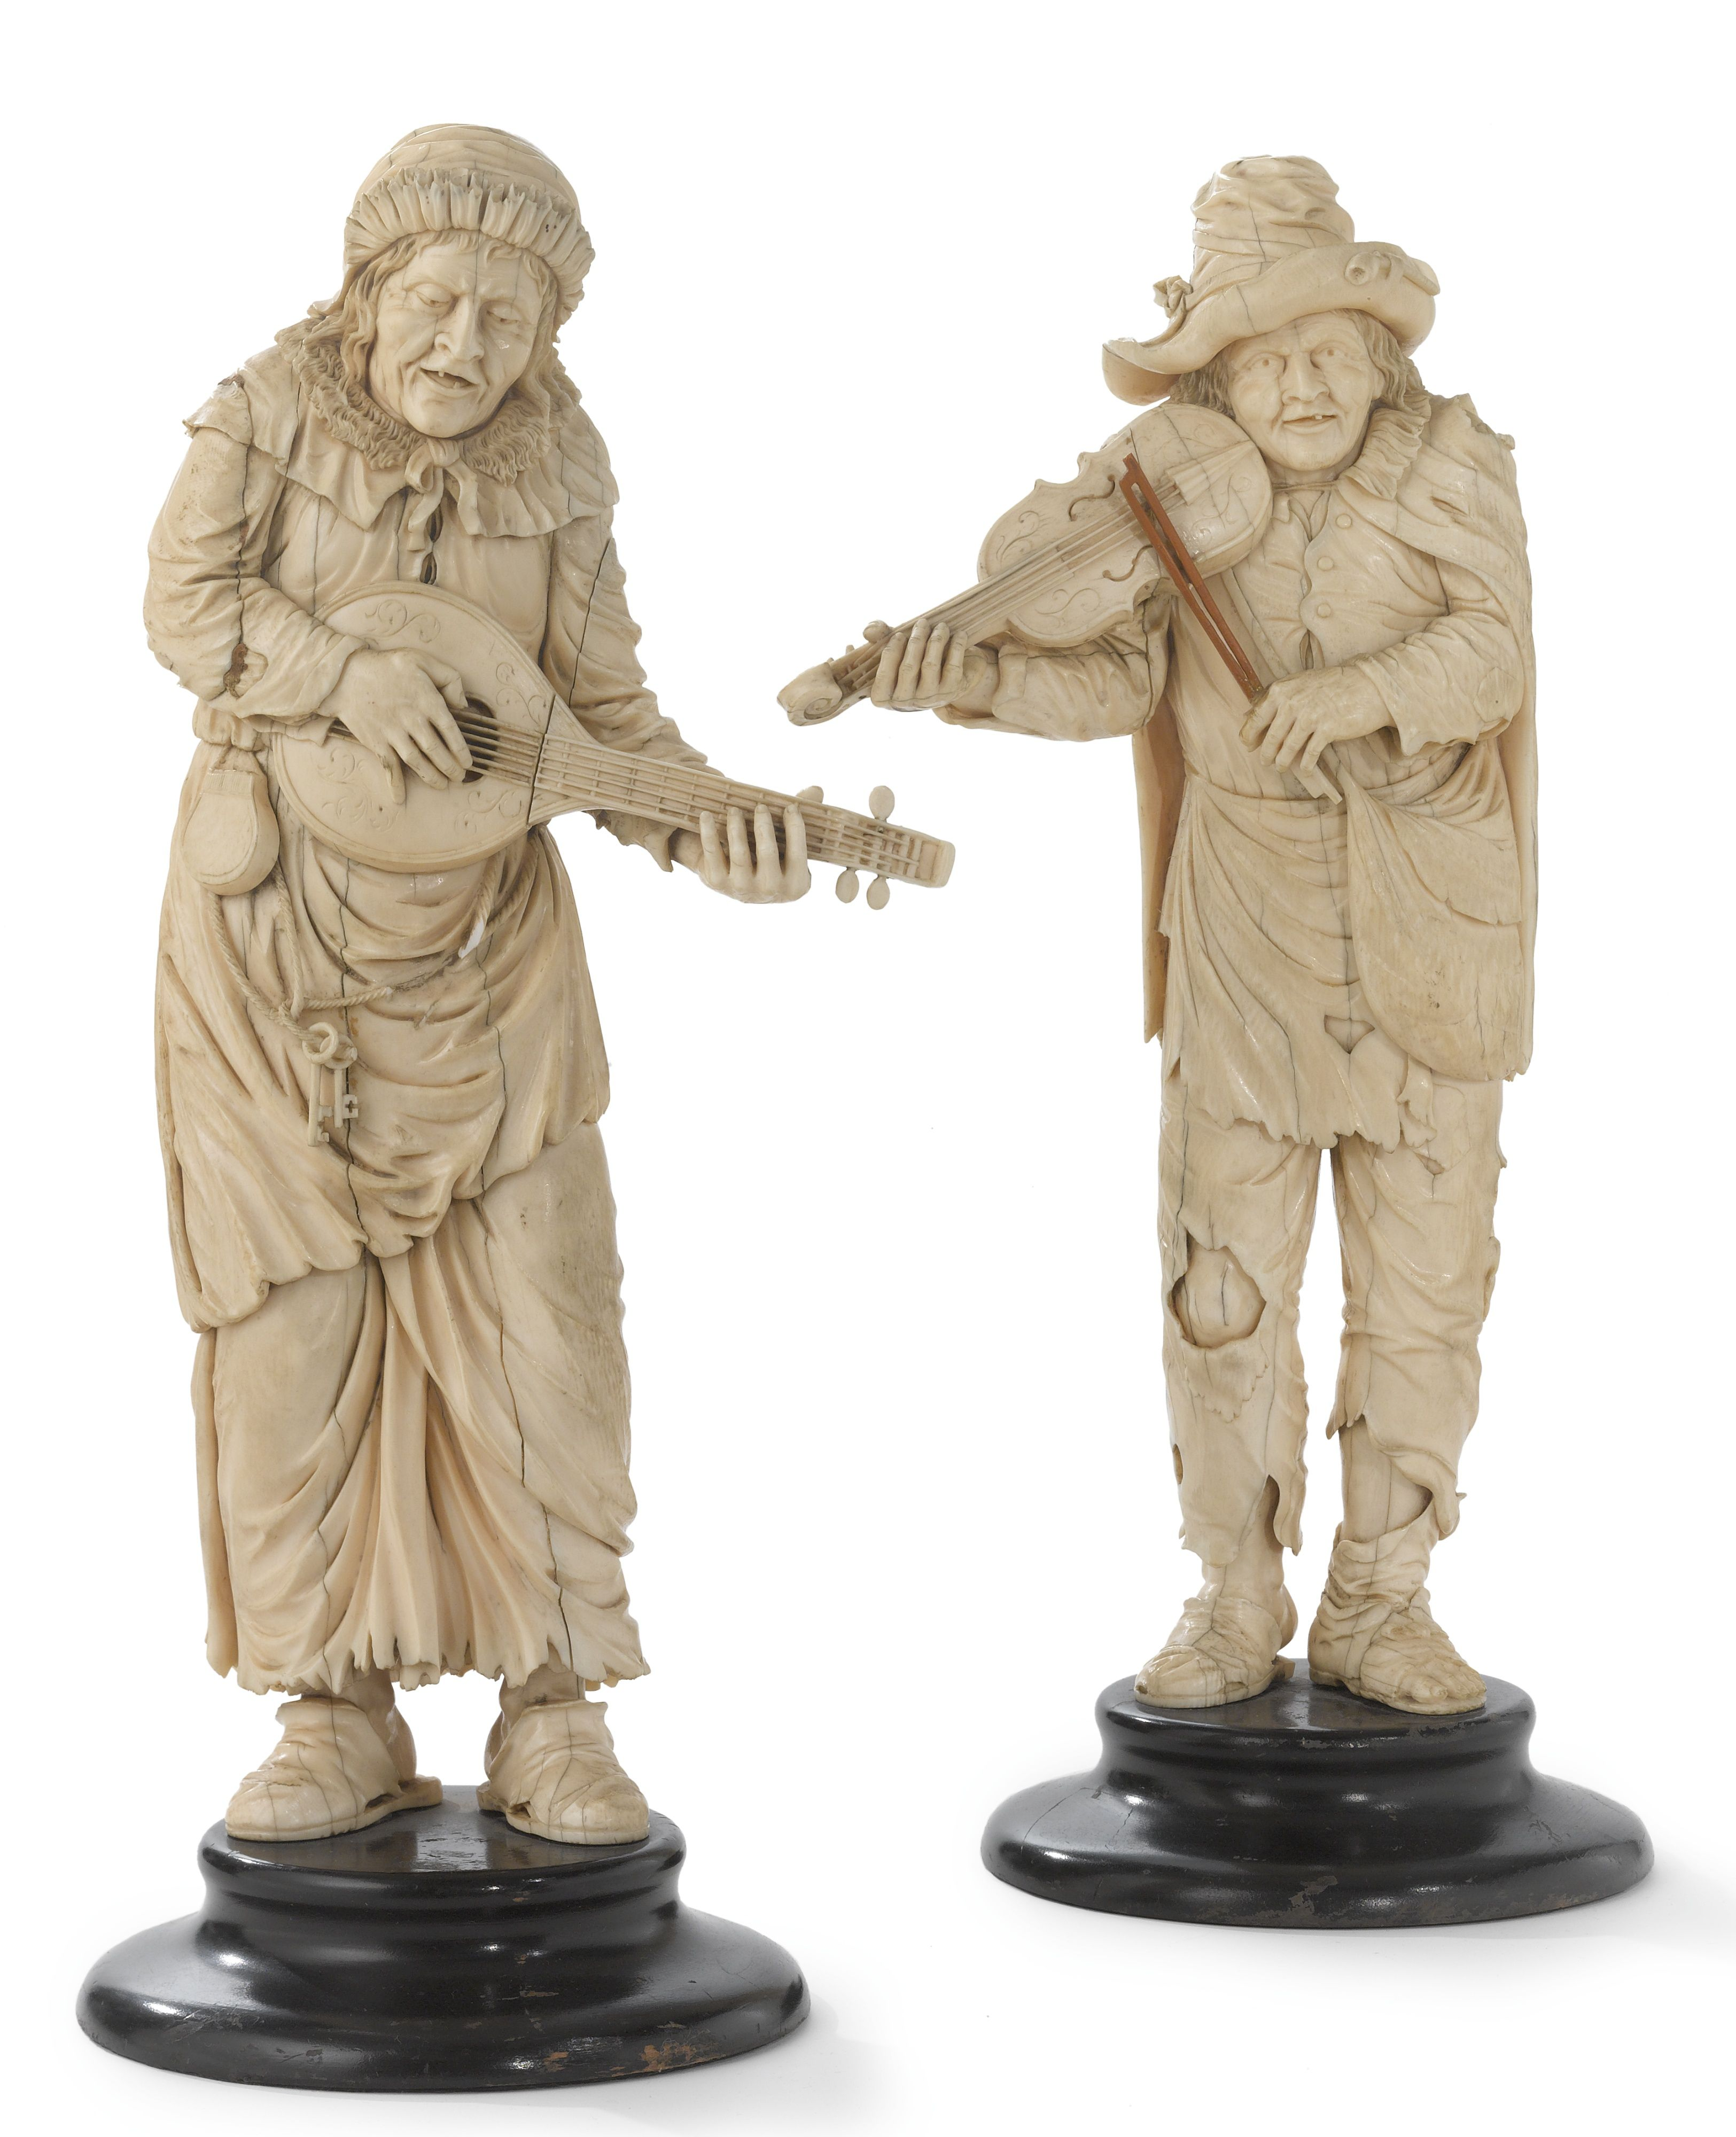 A PAIR OF CARVED IVORY FIGURES OF BEGGAR MUSICIANS IN THE MANNER OF SIMON TROGER, Germany, 2nd half 19th century.